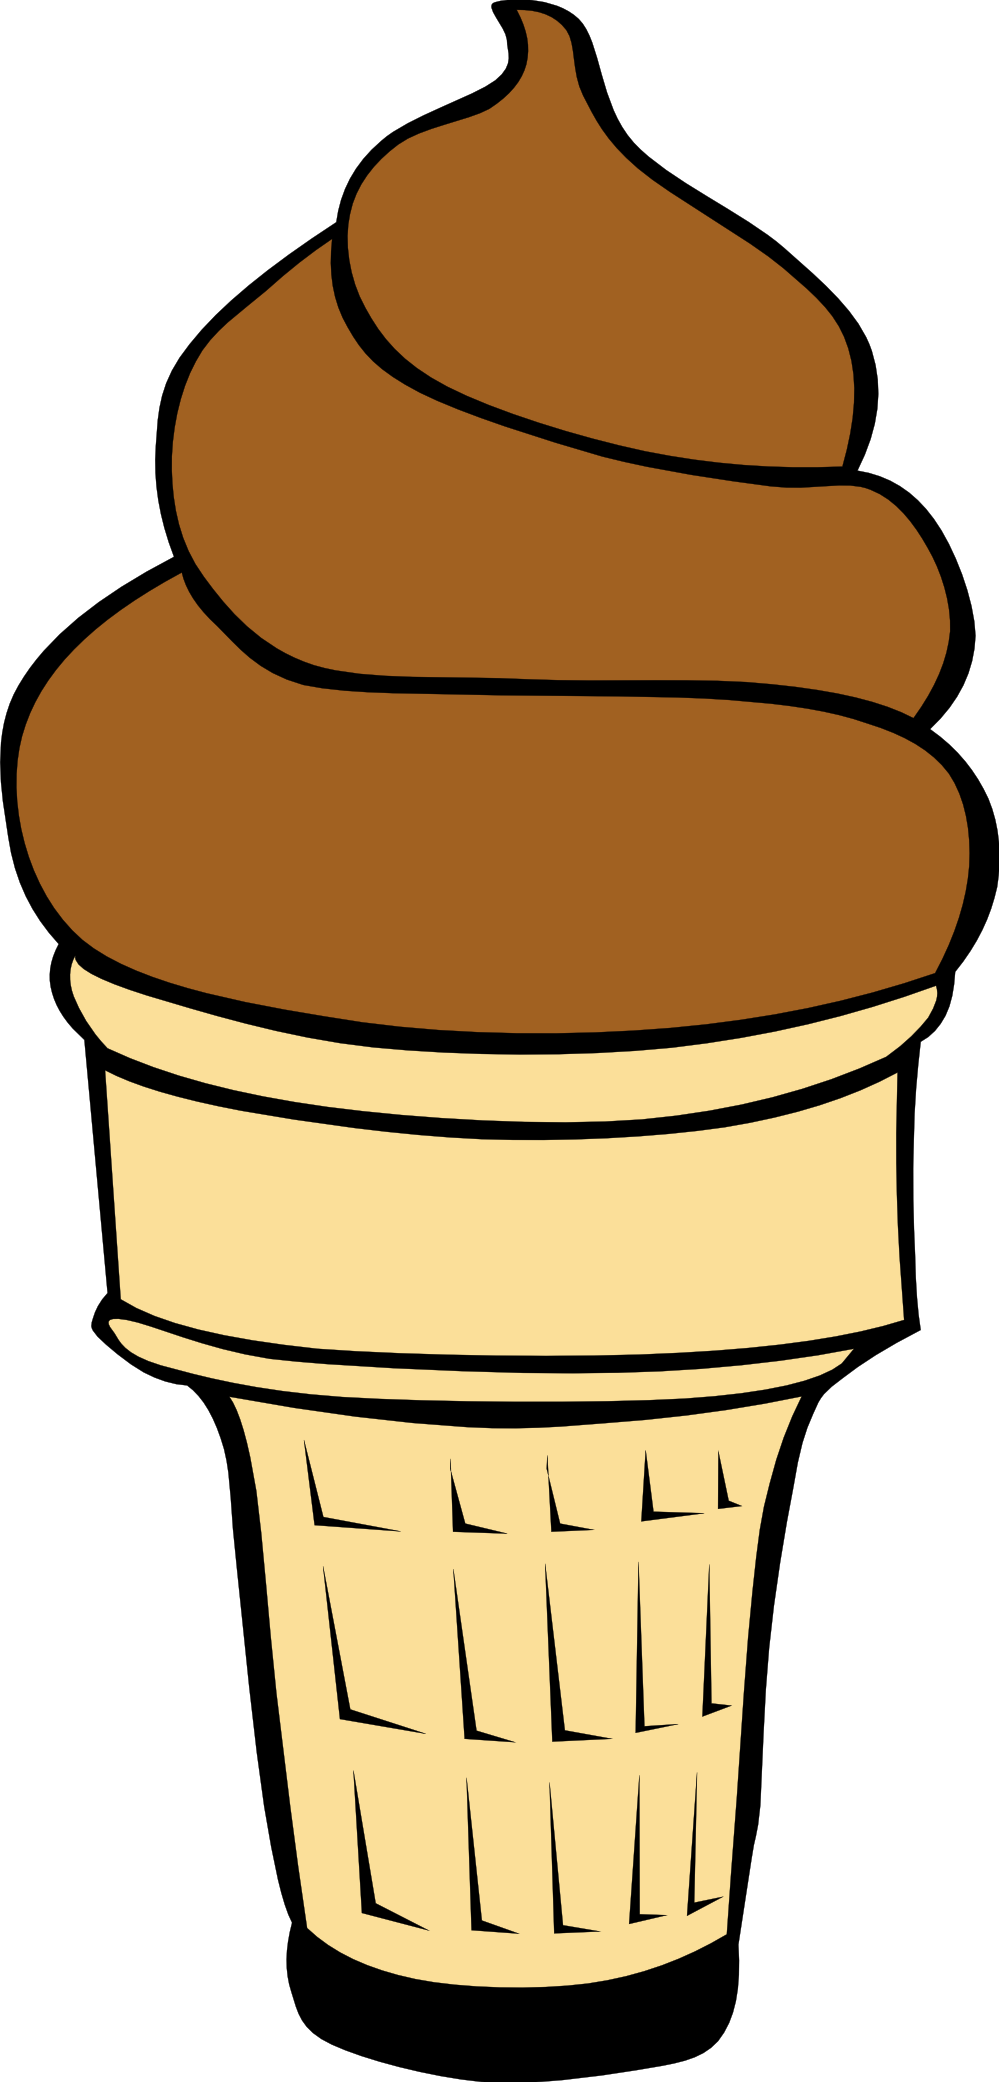 Empty Ice Cream Cone Clipart | Clipart library - Free Clipart Images